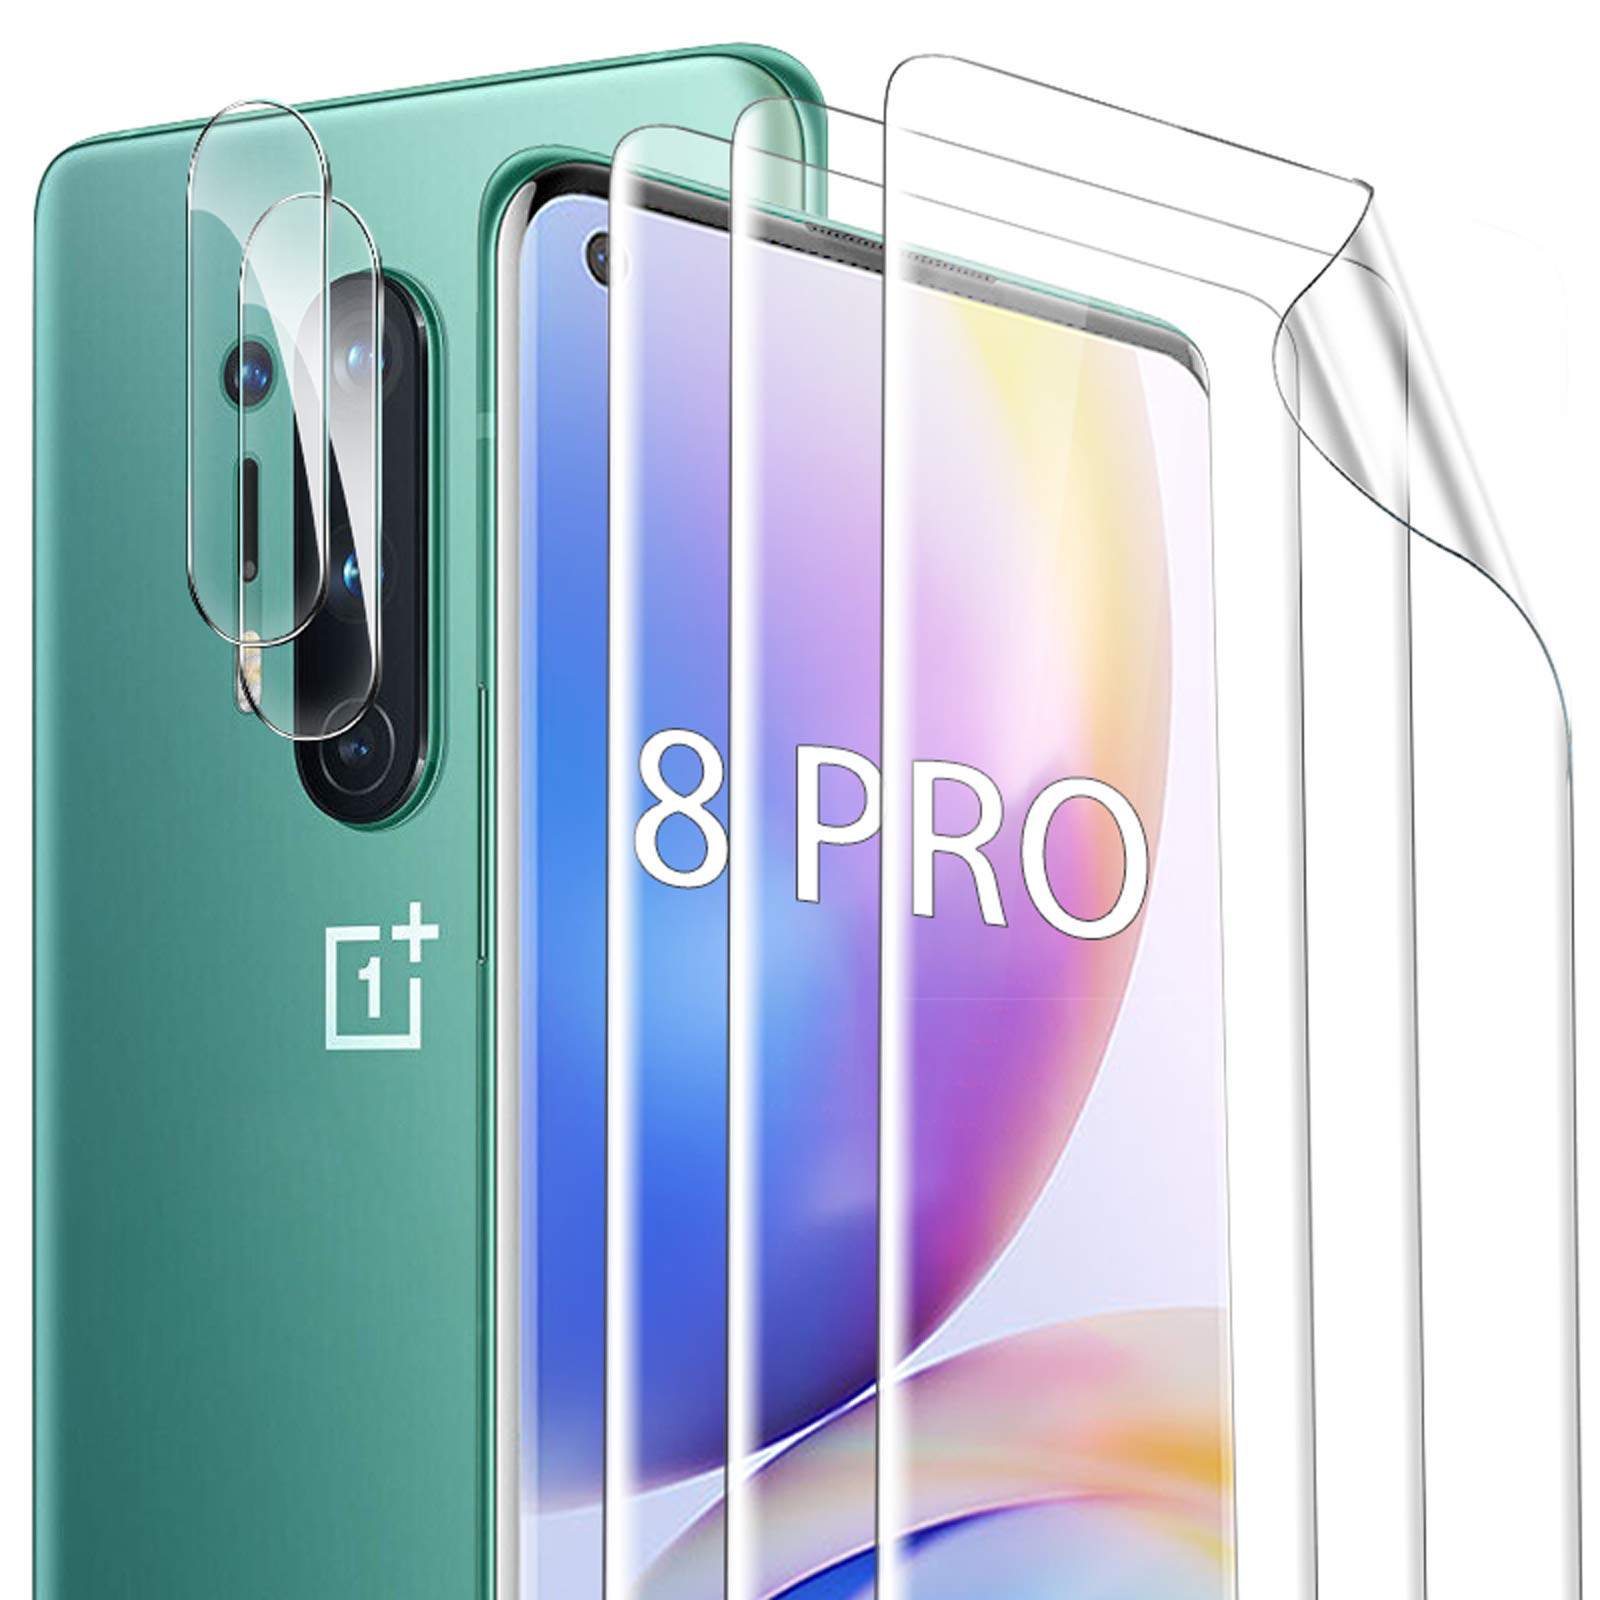 GESMA for Oneplus 8 Pro Screen Protector and Camera Lens Protector, [3 Screen Protectors+2 Camera Protectors] Bubble Free Scratchproof TPU Film Screen Protector for Oneplus 8 Pro(NOT FIT WITH ONEPLUS 8) (Clear)